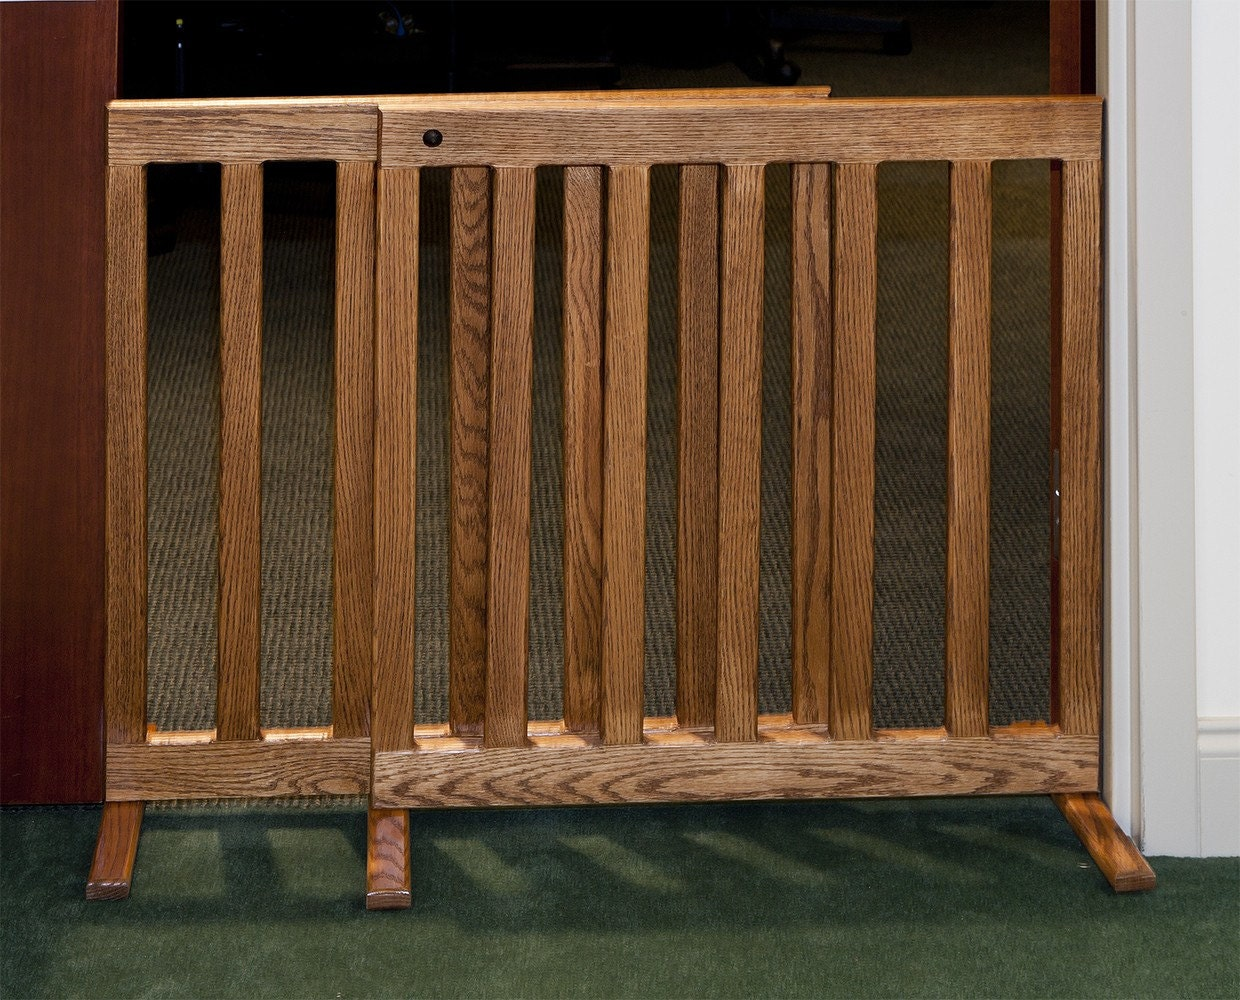 Amish Adjustable Dog 48 Inch Gate Wooden Puppy By Pinnaclewc